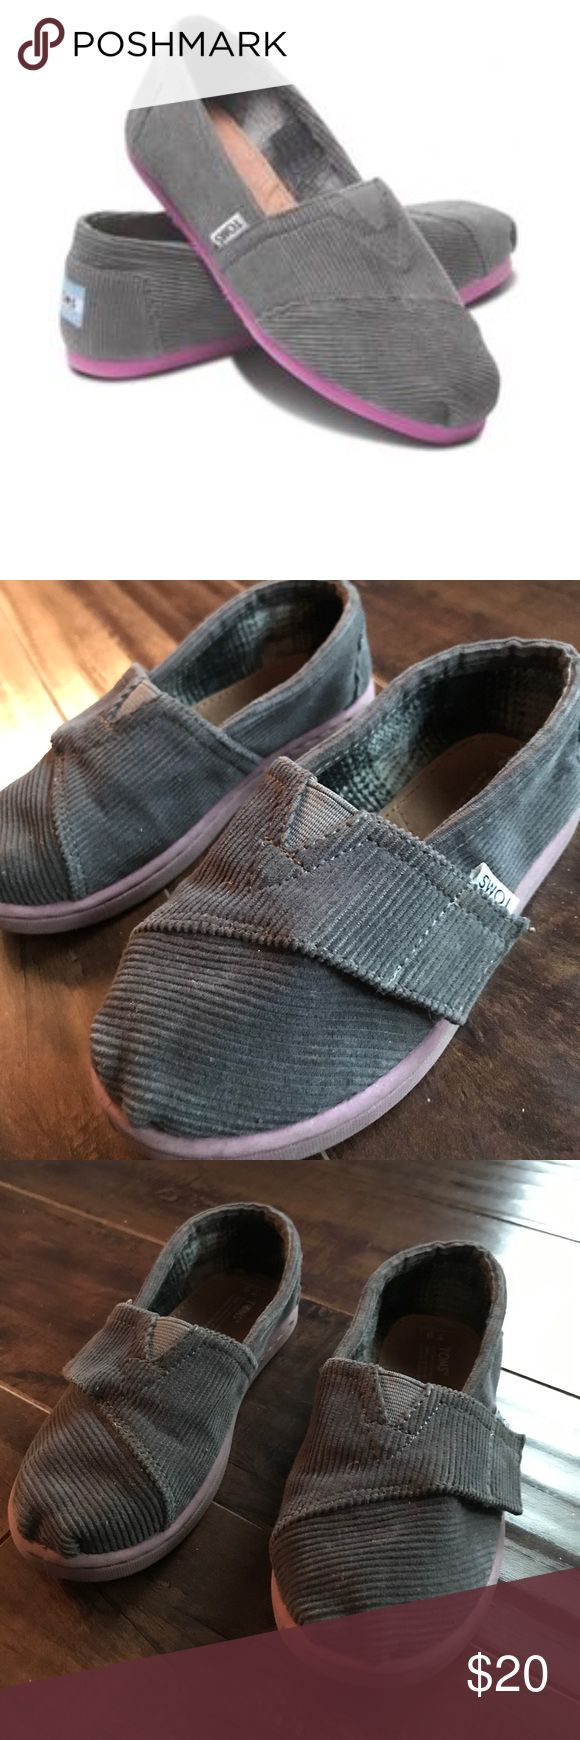 Tiny Tom's Gray & Purple Corduroy Gently loved. Plenty of wear left! Gray Corduroy with lavender colored soles. Smoke free home TOMS Shoes Sneakers